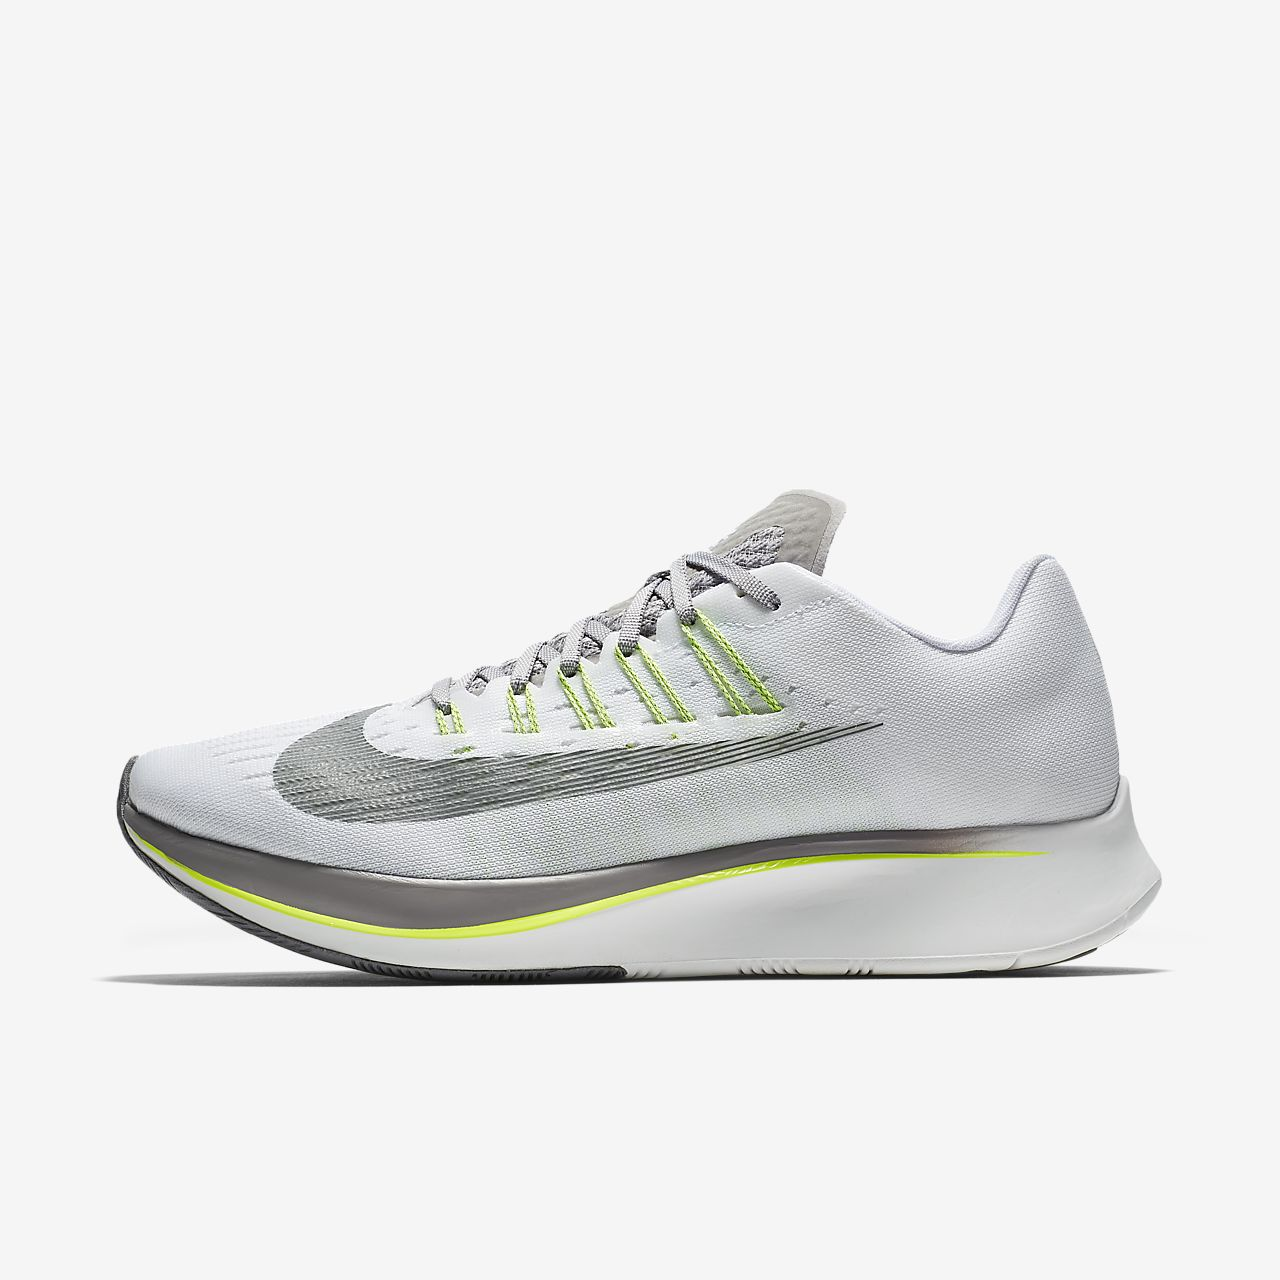 db37edd015dd0 Nike Zoom Fly Men s Running Shoe. Nike.com